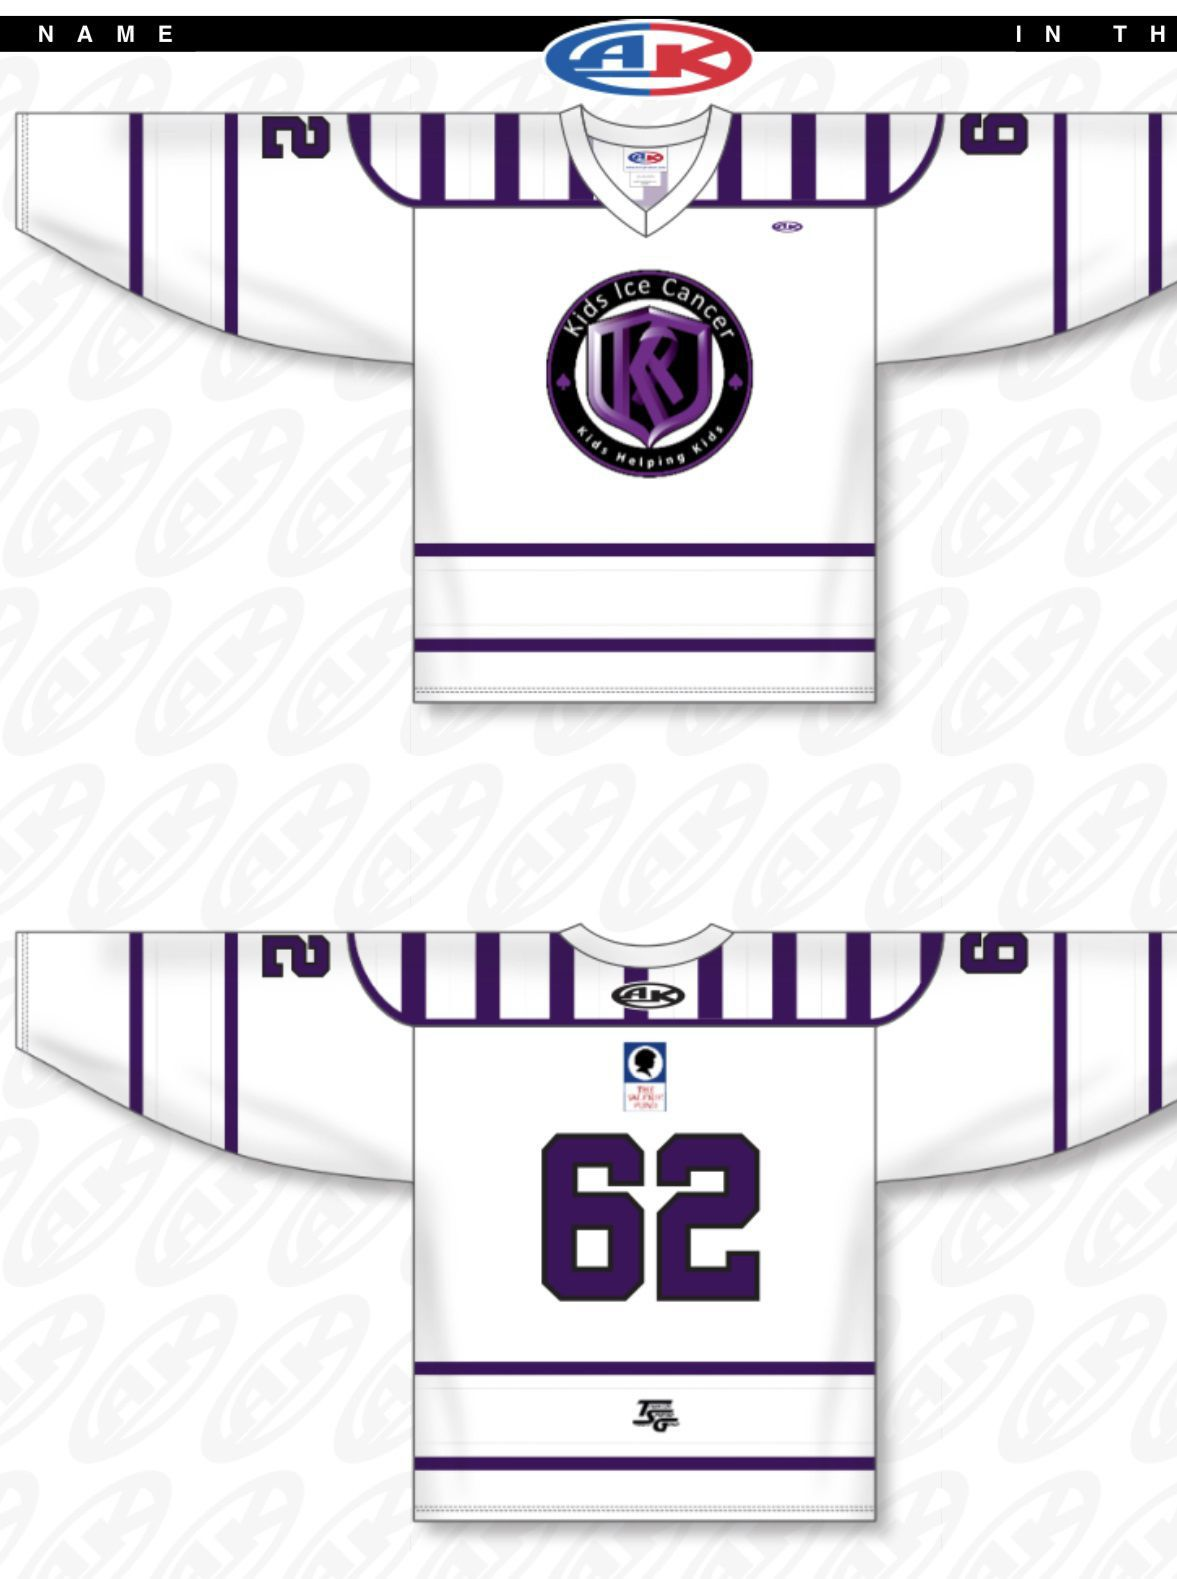 All Stars game jersey